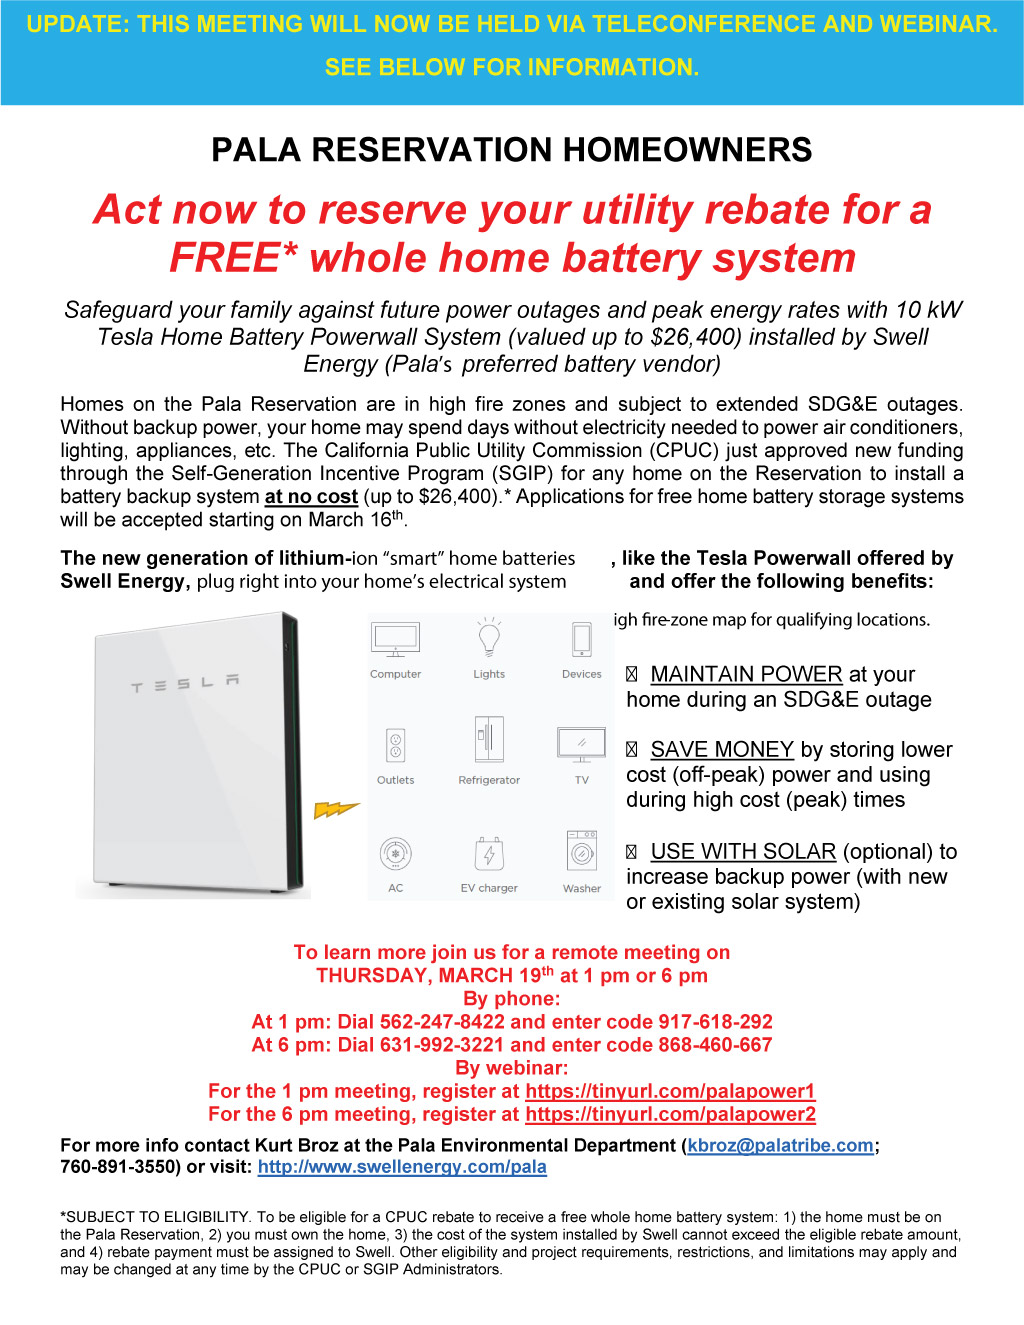 Pala Band of Mission Indians PBMI Home Battery System Webinar